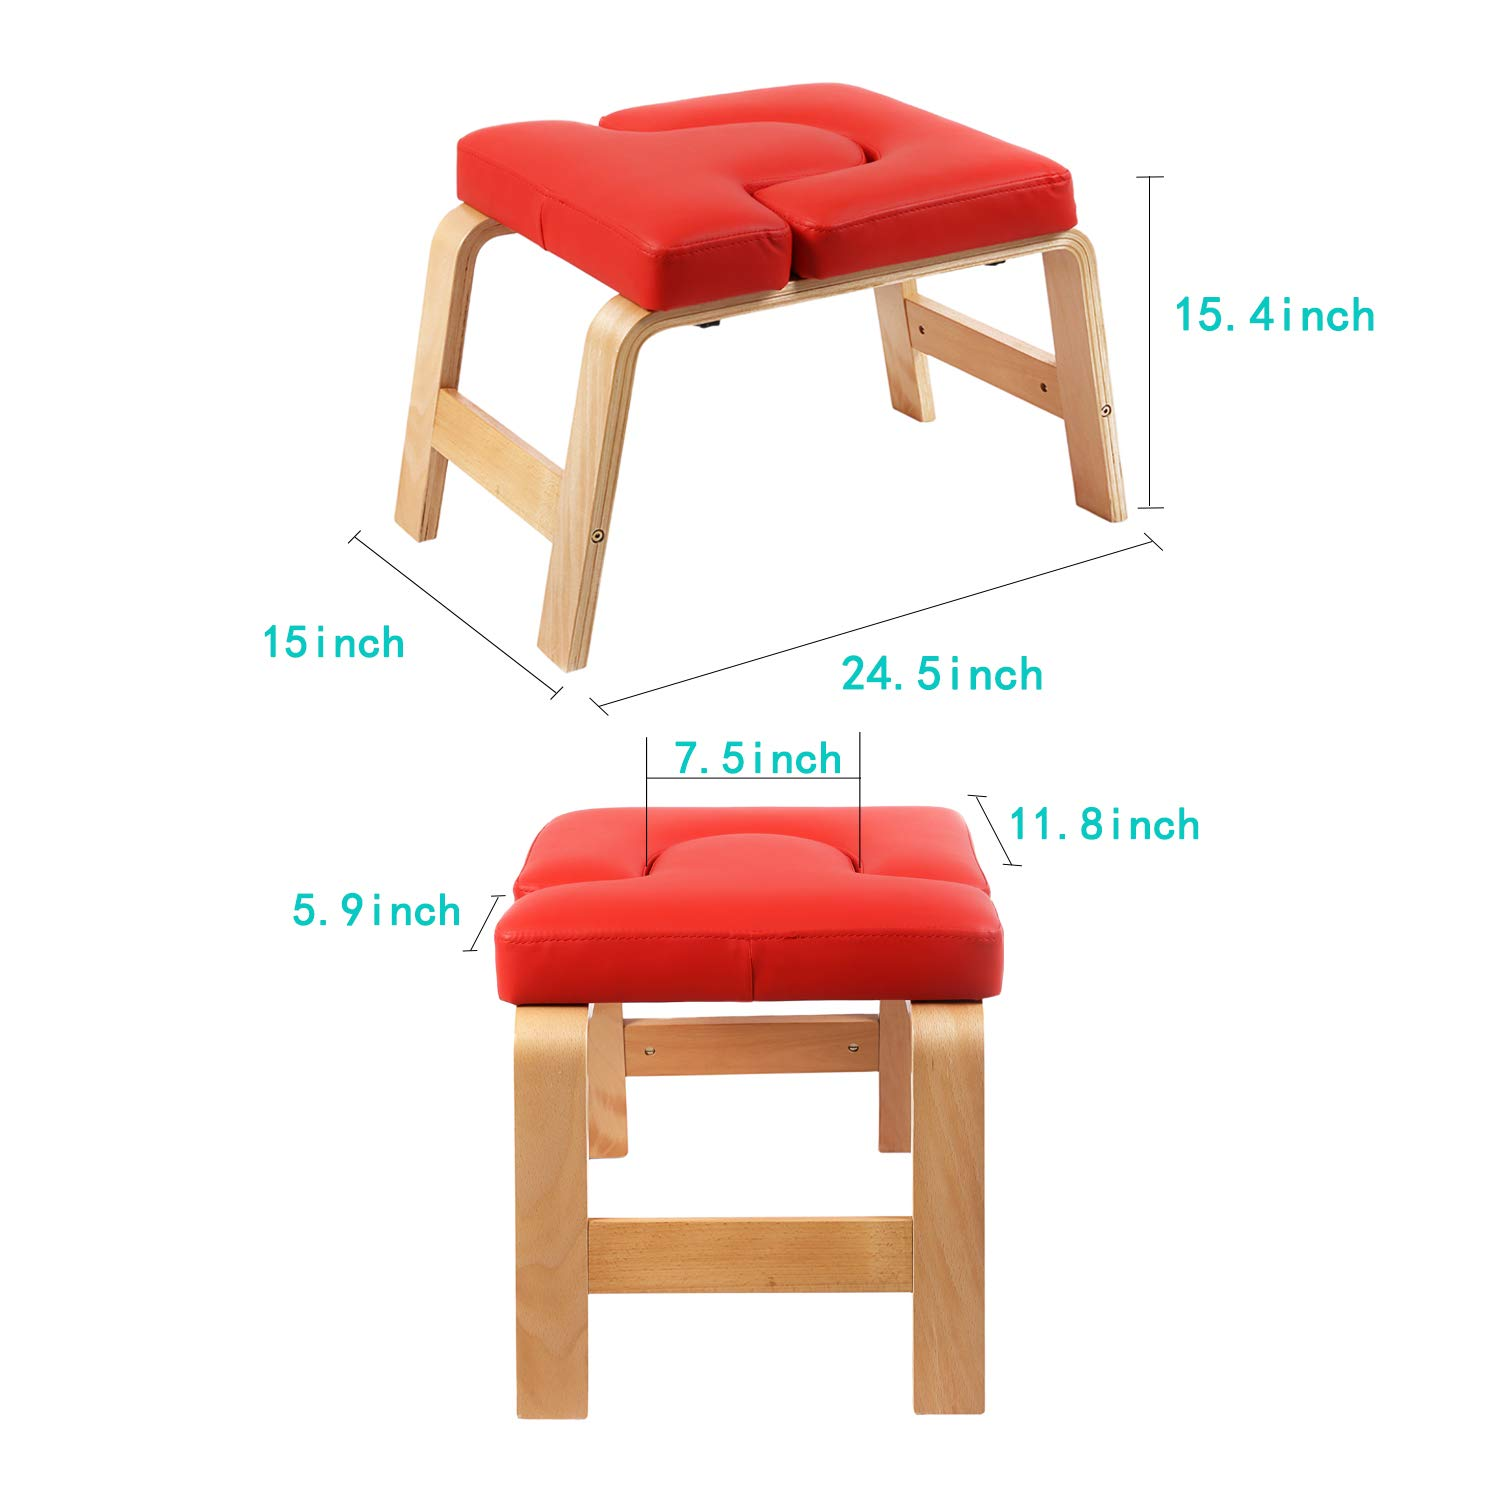 Desire Life Yoga Headstand Bench - Stand Yoga Chair for Family, Gym - Wood and PU Pads - Relieve Fatigue and Build Up Body (Red) by Desire Life (Image #3)